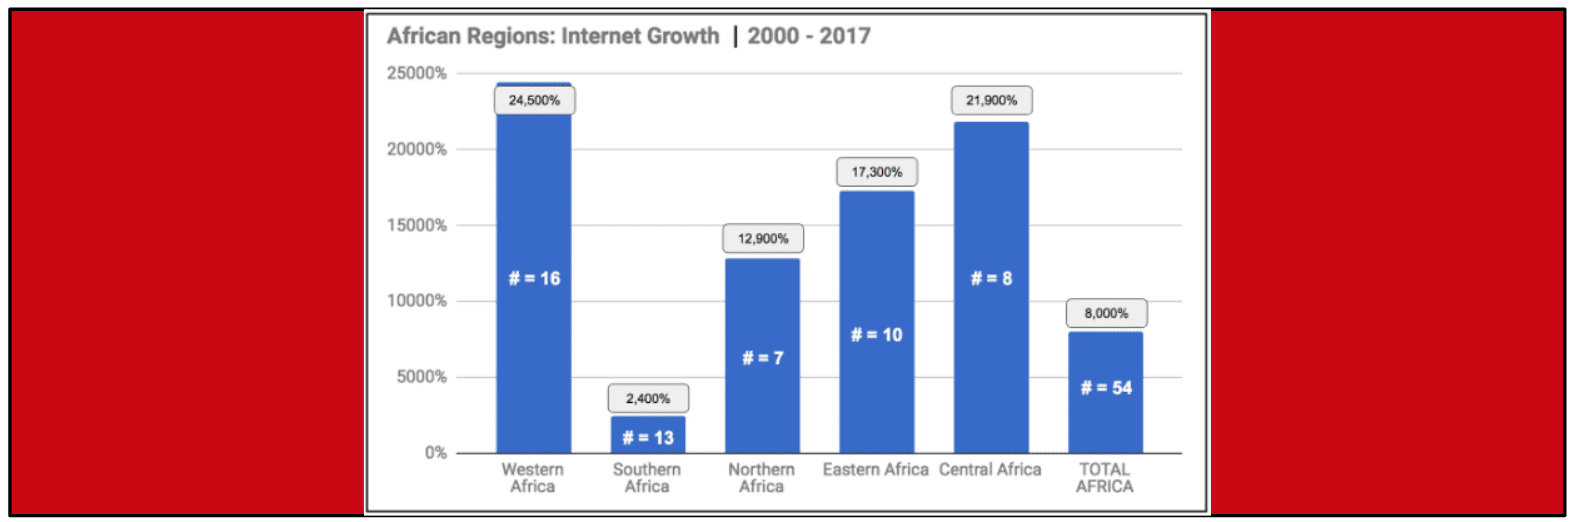 Growth of Internet Users in Africa 2017